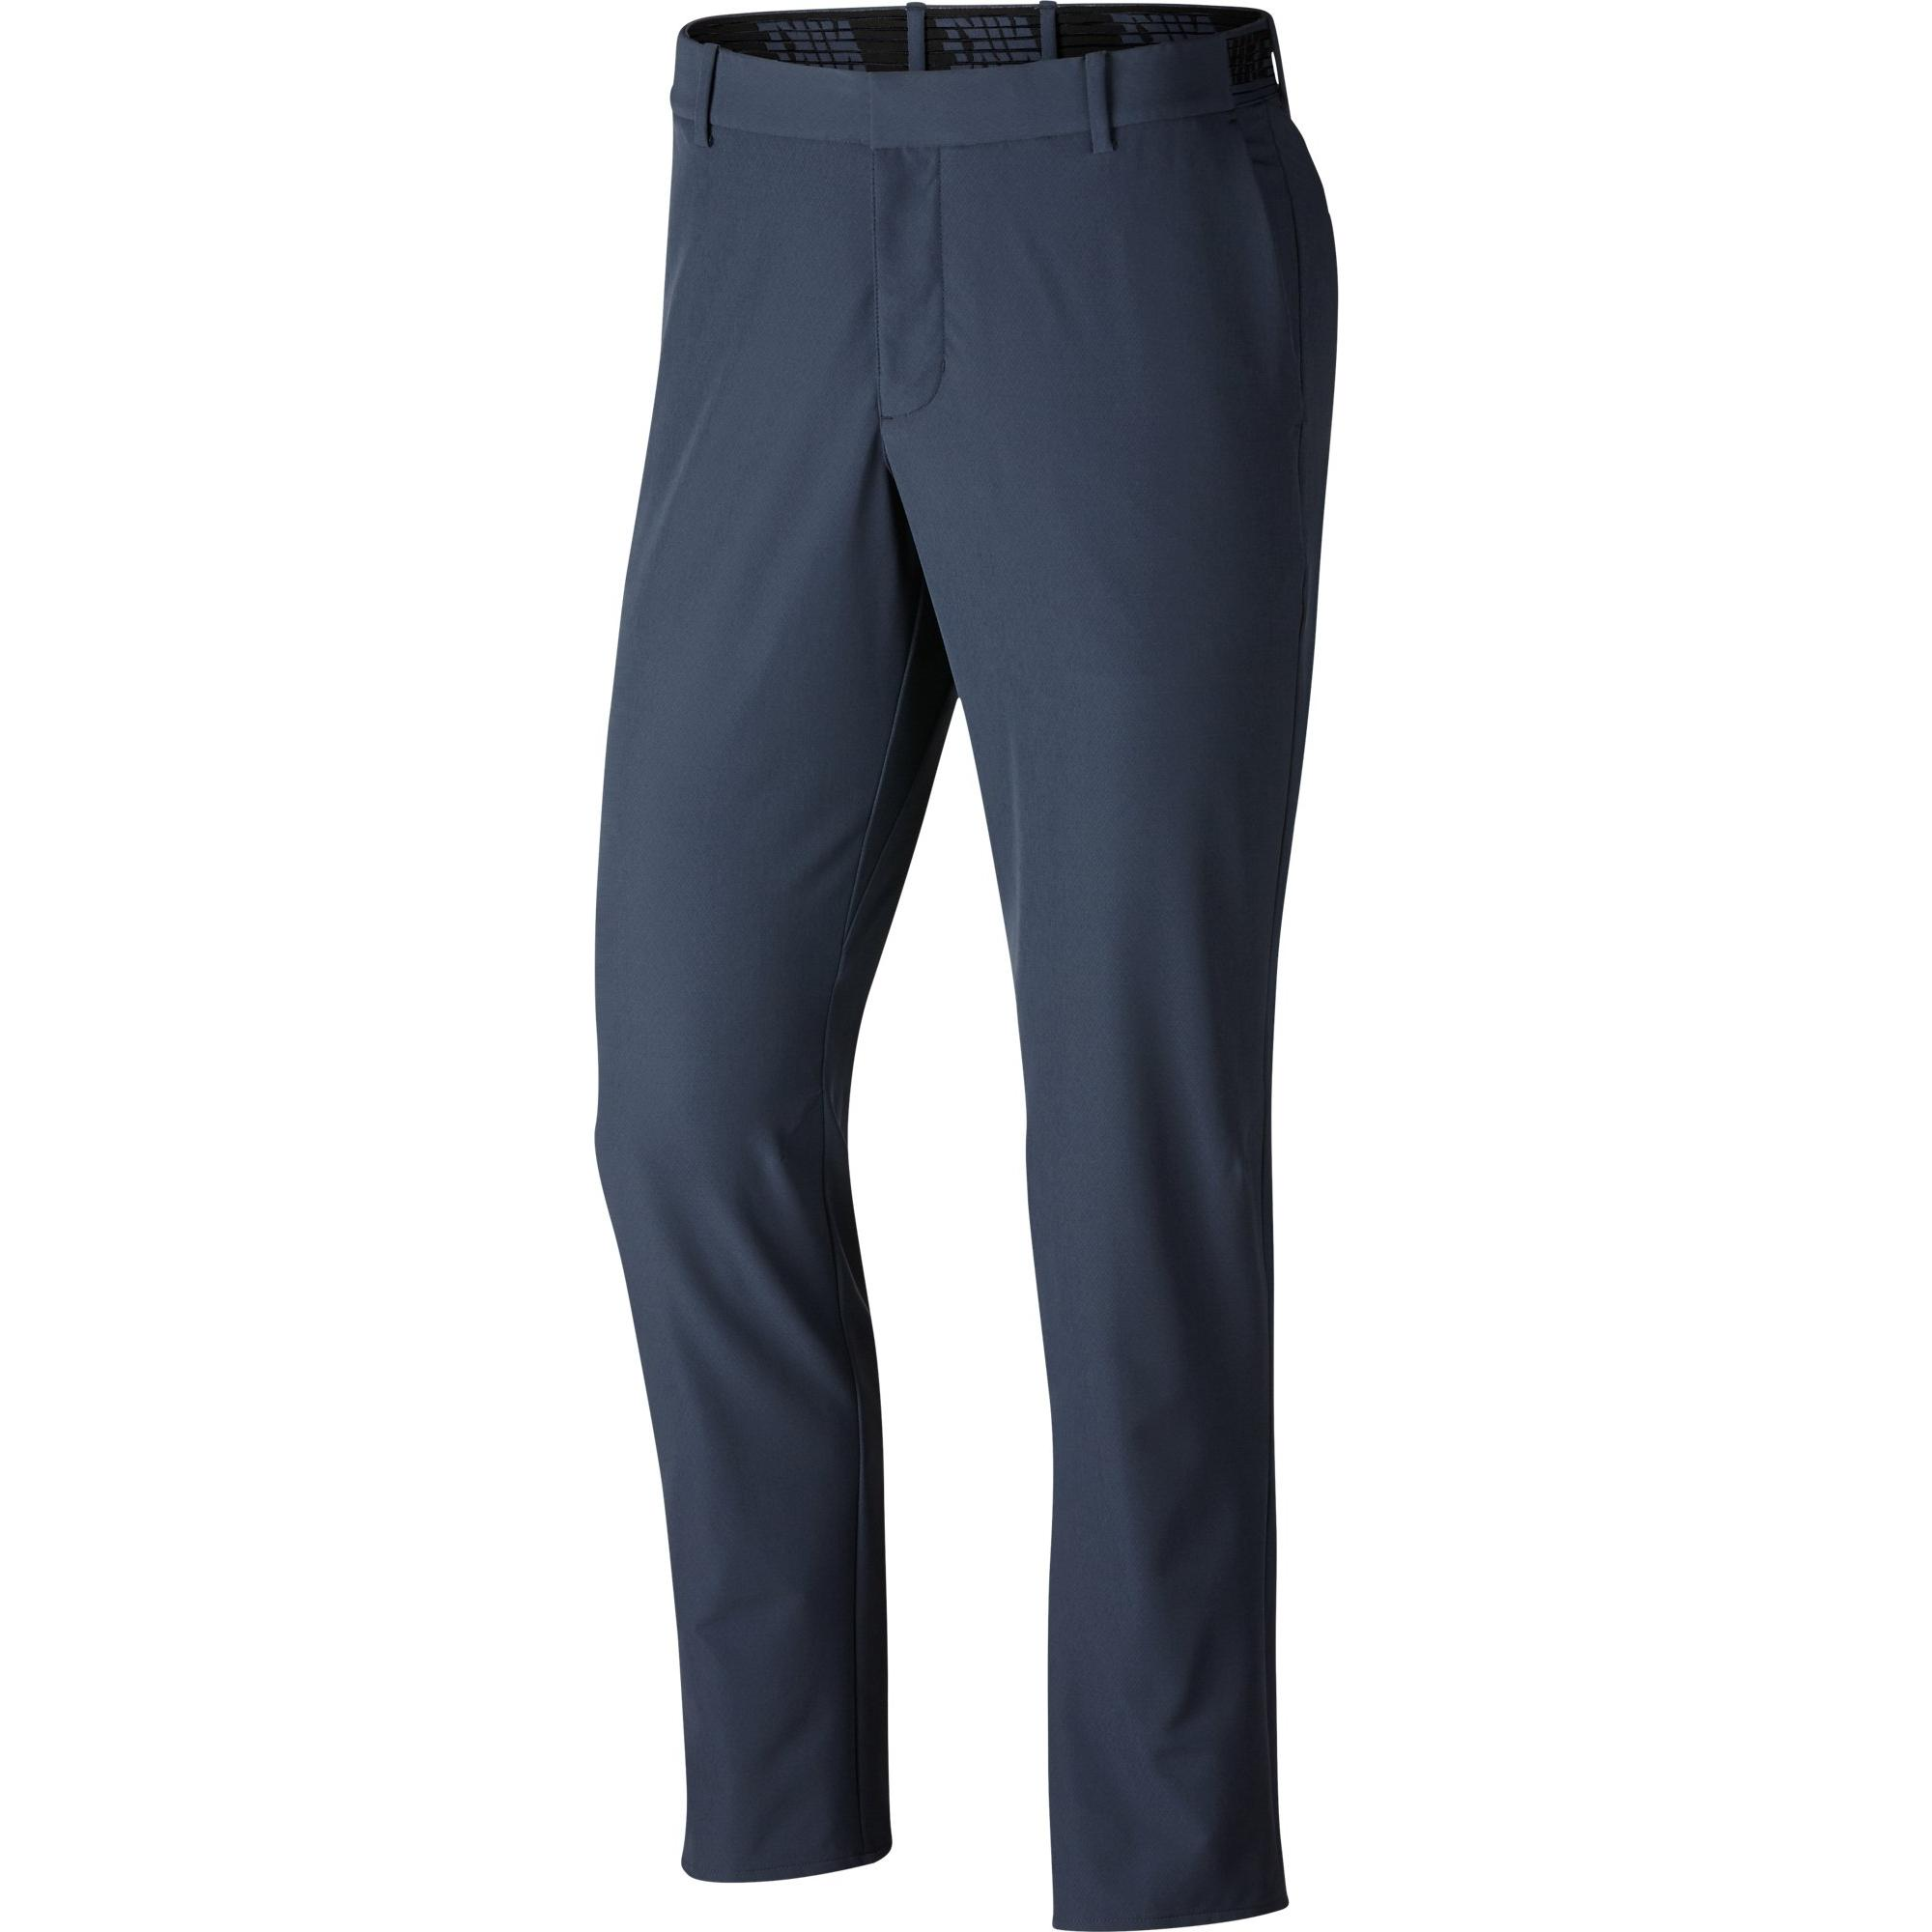 Men's Flex Pants